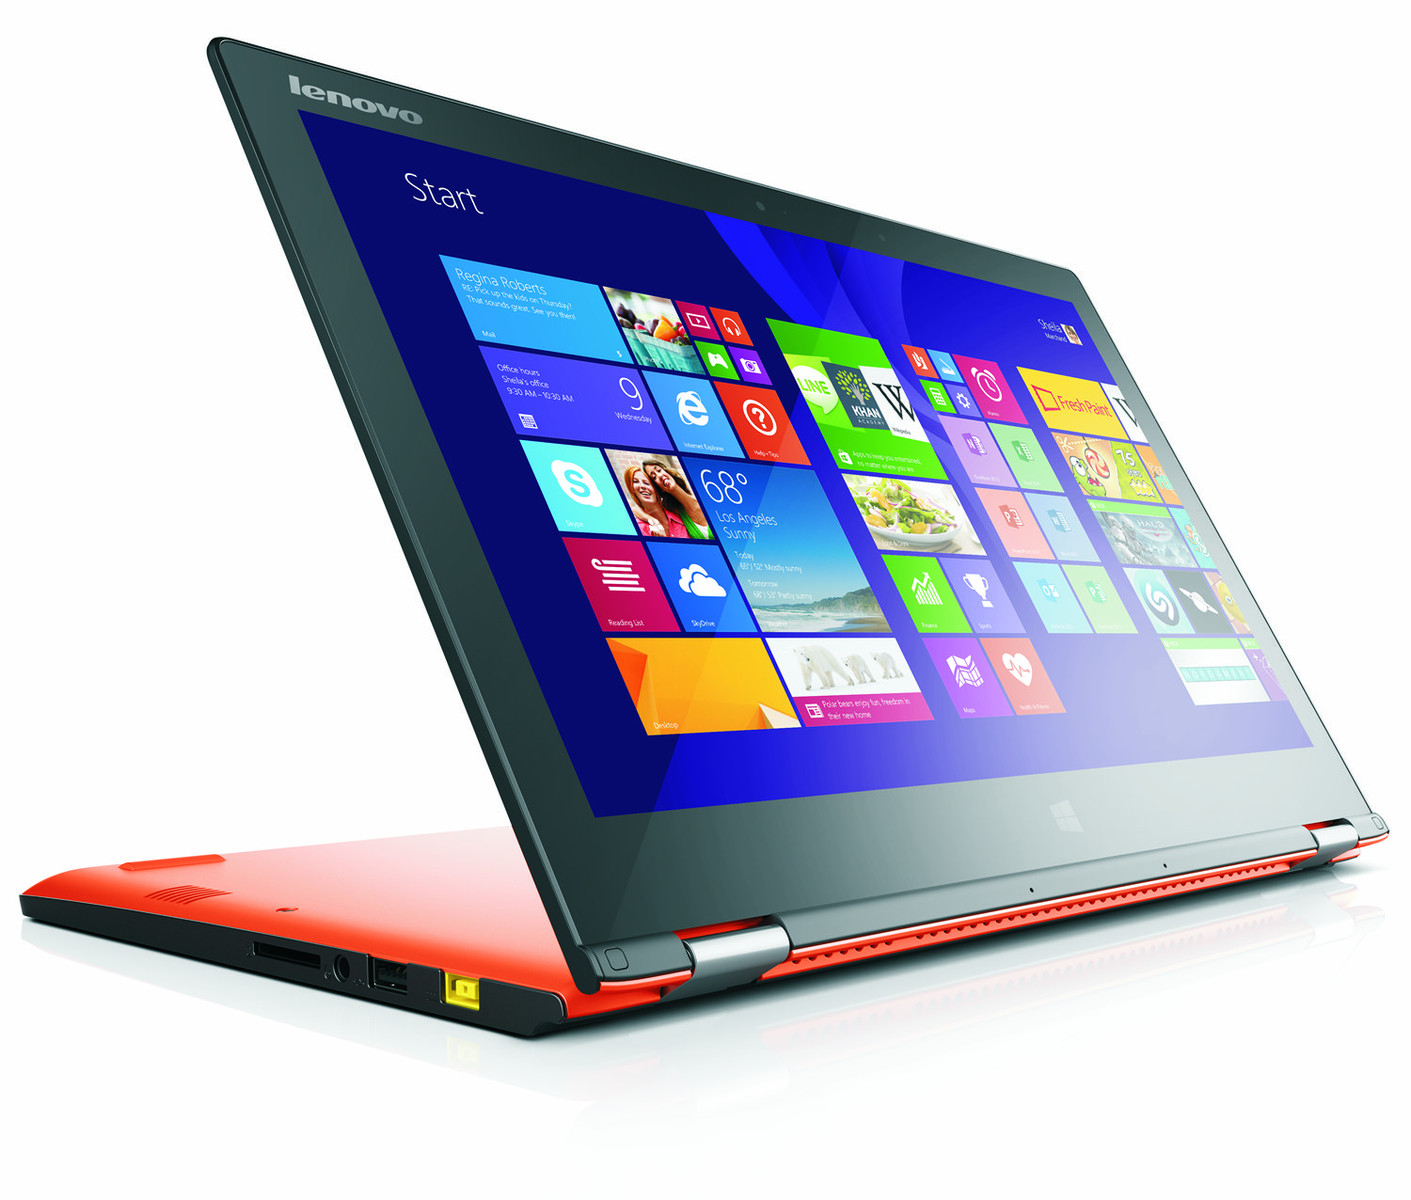 Lenovo Yoga 2 13 review CNET